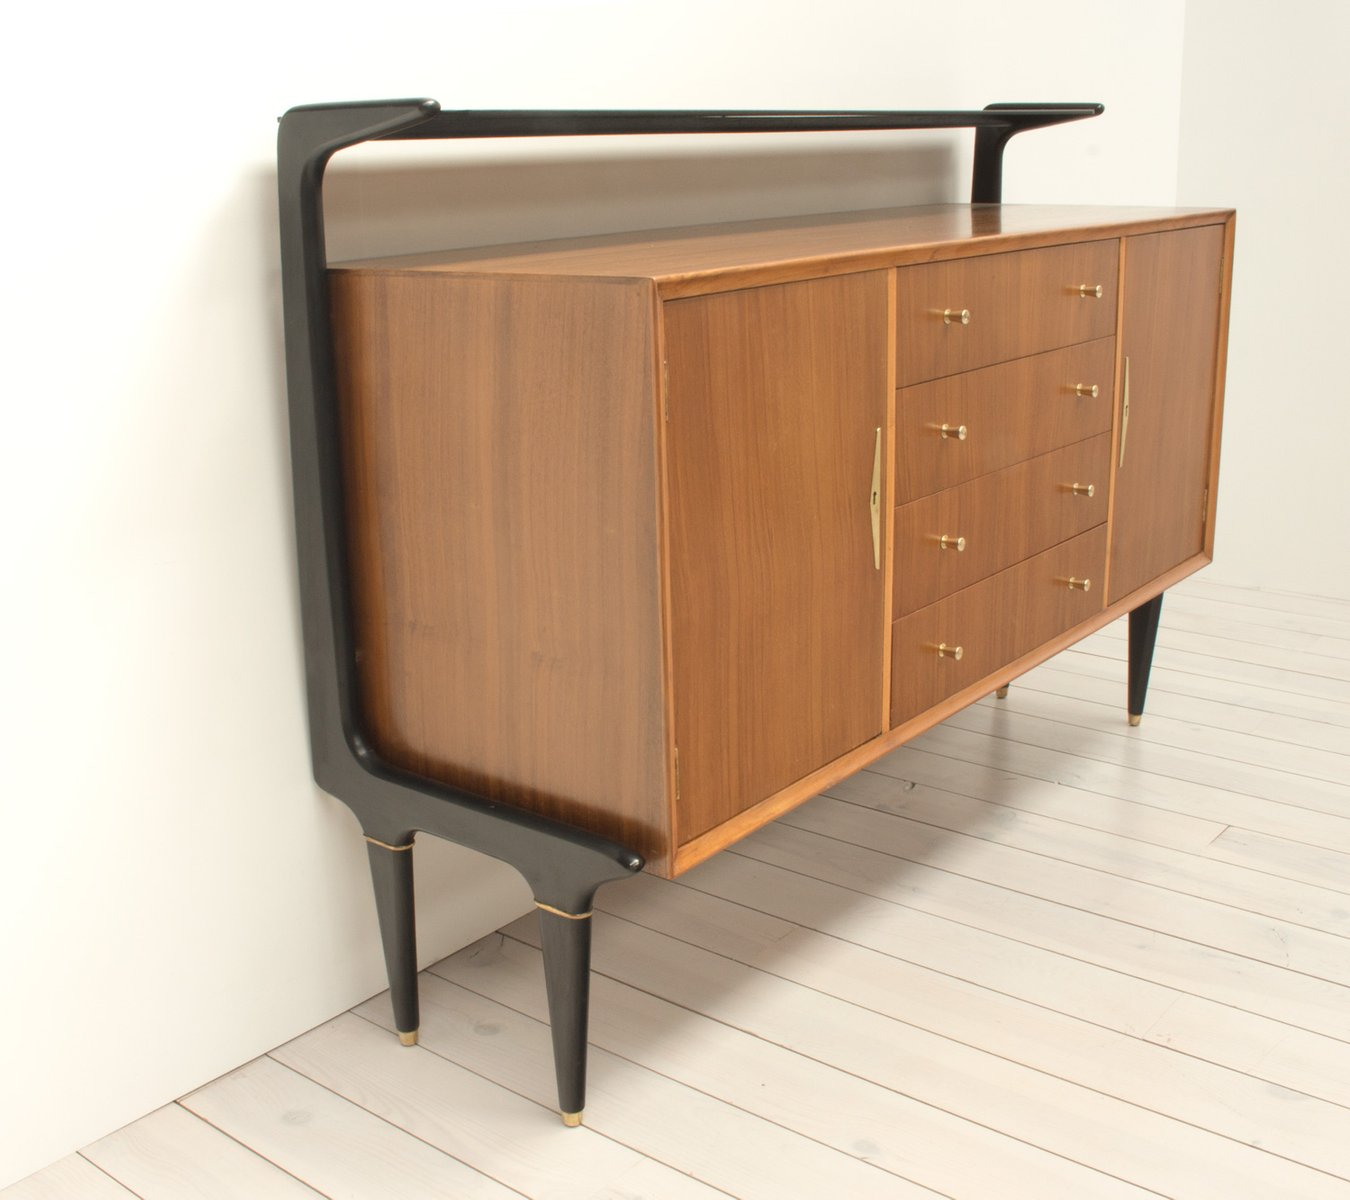 modern sideboard rules with Mid Century Modern Italian Sideboard 1 on Media Center Design Ideas Living Room also Round 9 Feature Match Dave Williams Usa Vs Mike Pustilnik Usa 2015 as well Mid Century Modern Italian Sideboard 1 as well 474989091931804613 further Mid Century Modern Sideboard From Paul Mccobb 1960s.